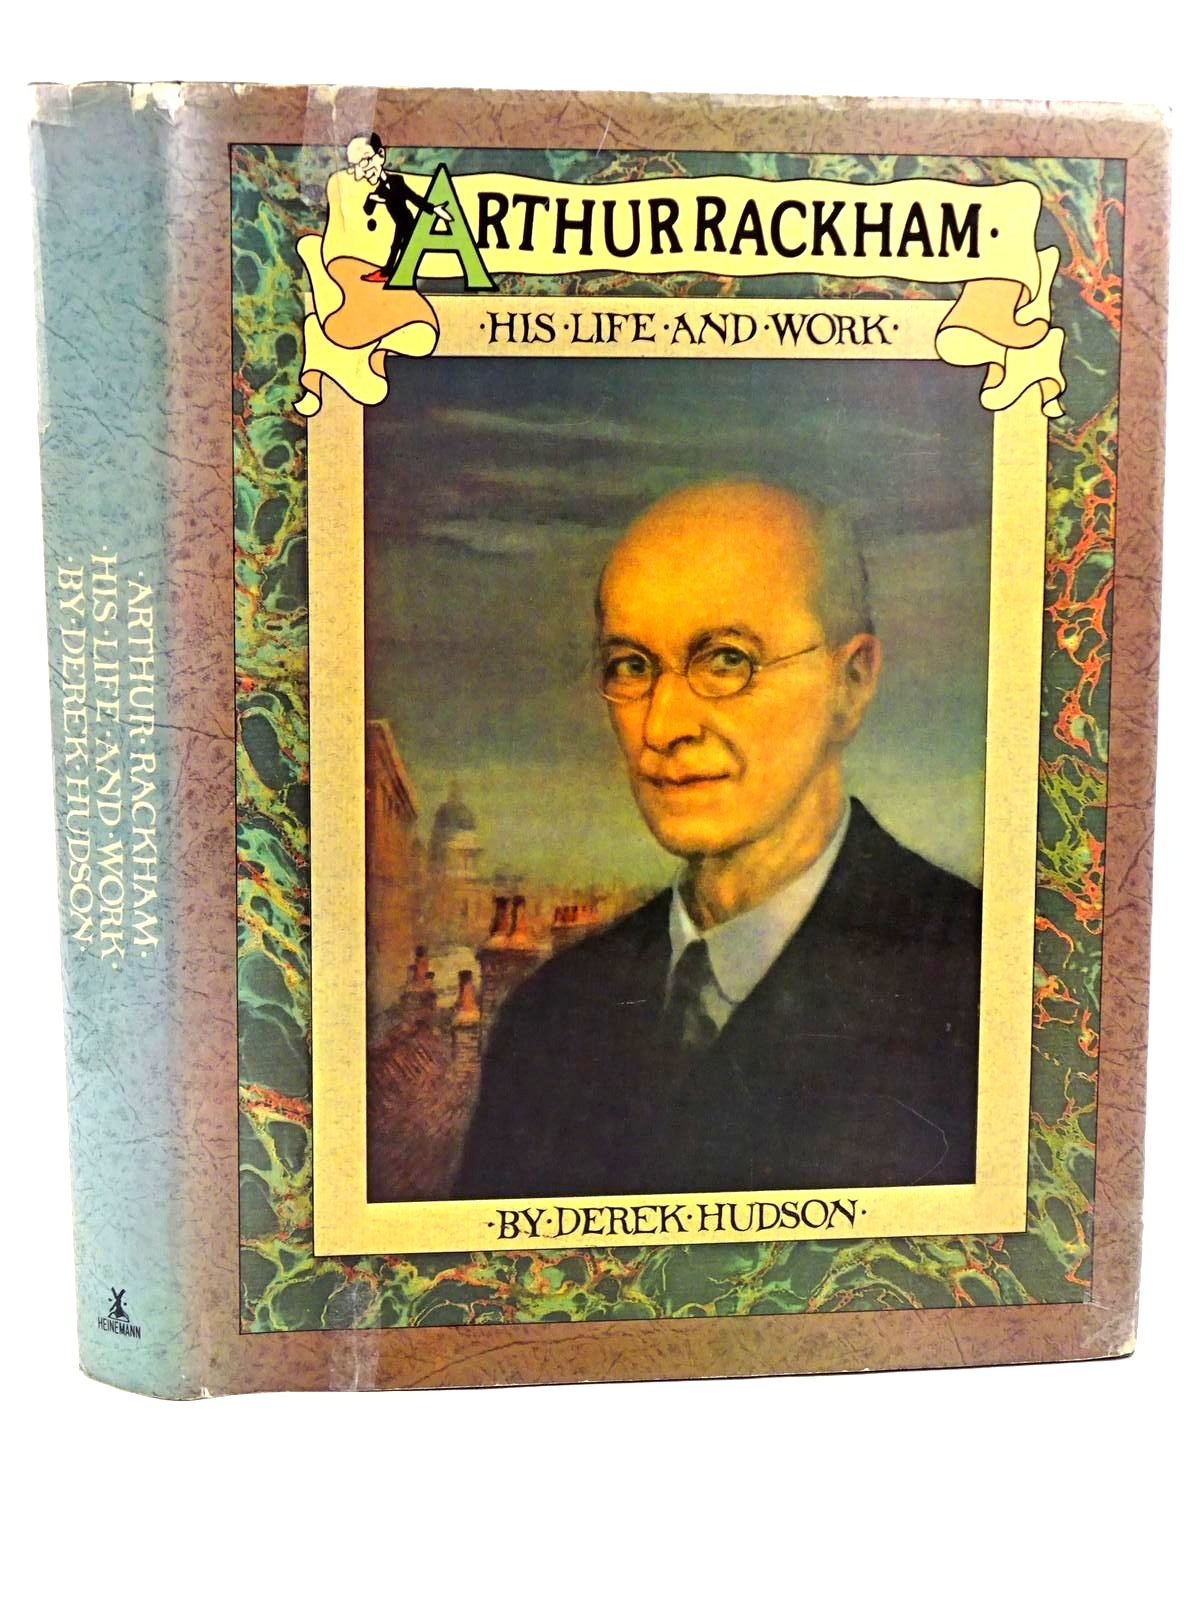 Photo of ARTHUR RACKHAM HIS LIFE AND WORK written by Hudson, Derek illustrated by Rackham, Arthur published by William Heinemann Ltd. (STOCK CODE: 1318099)  for sale by Stella & Rose's Books